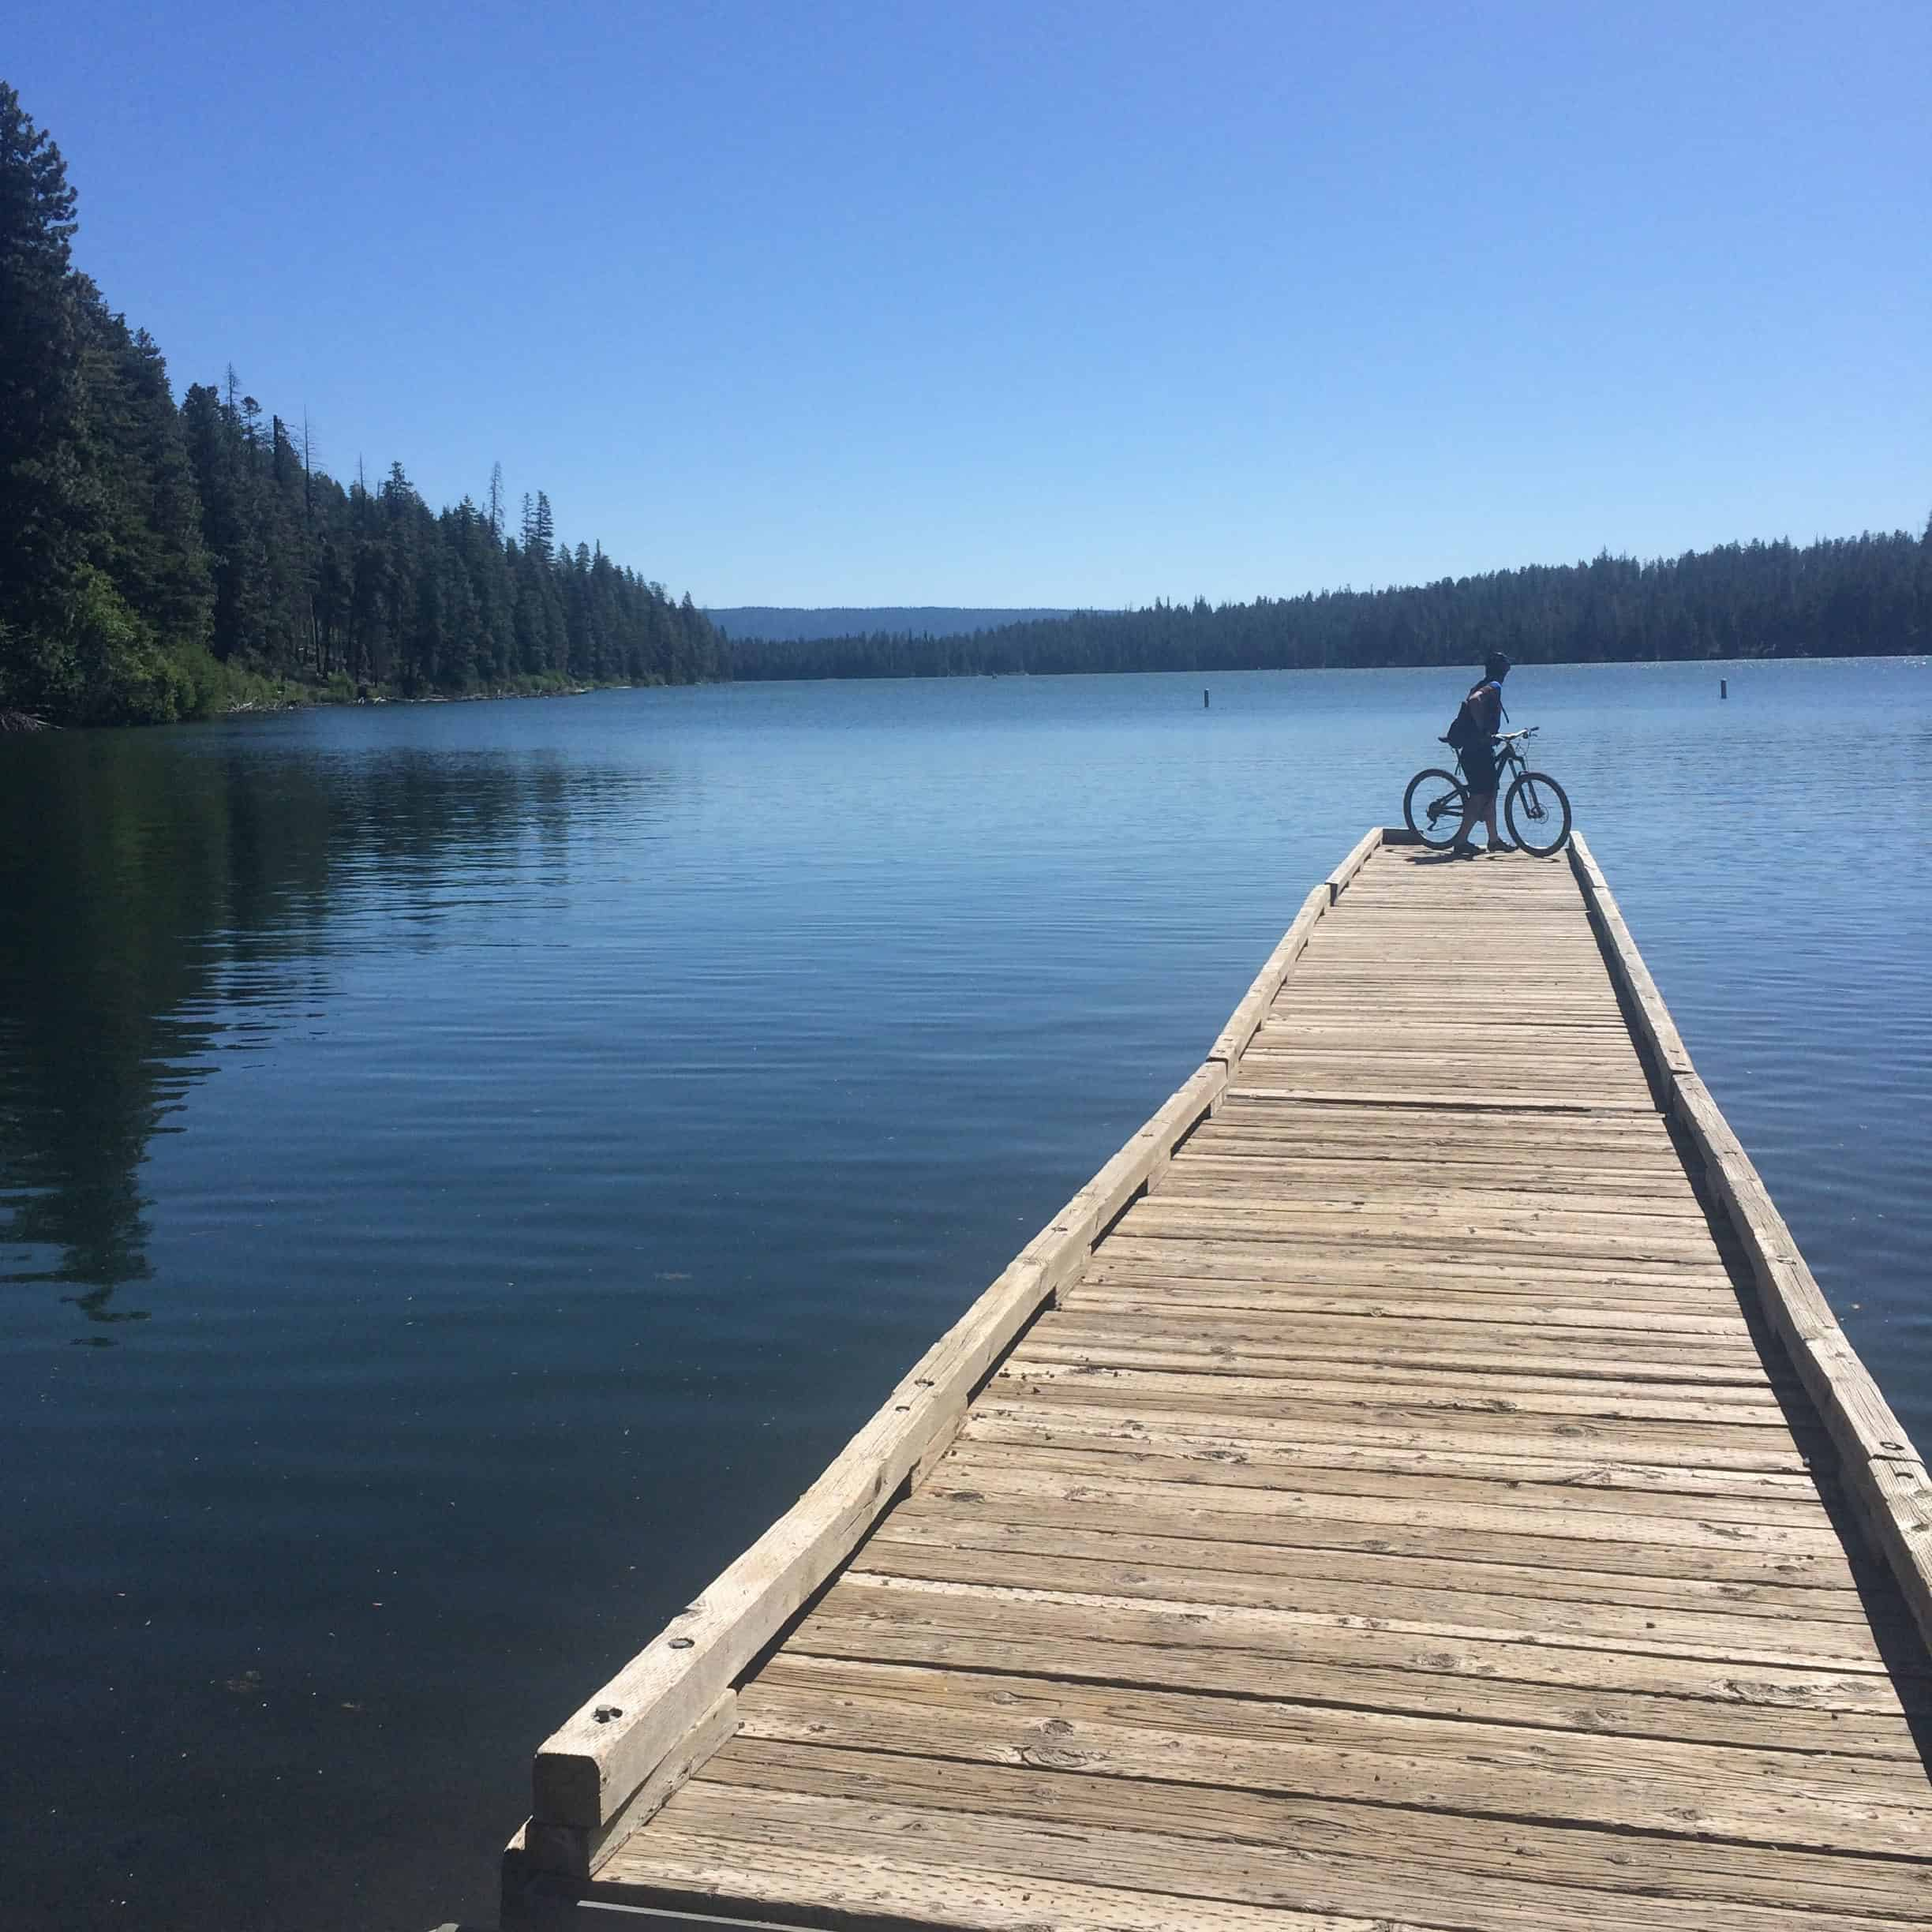 Cyclist on pier by Suttle Lake, Oregon